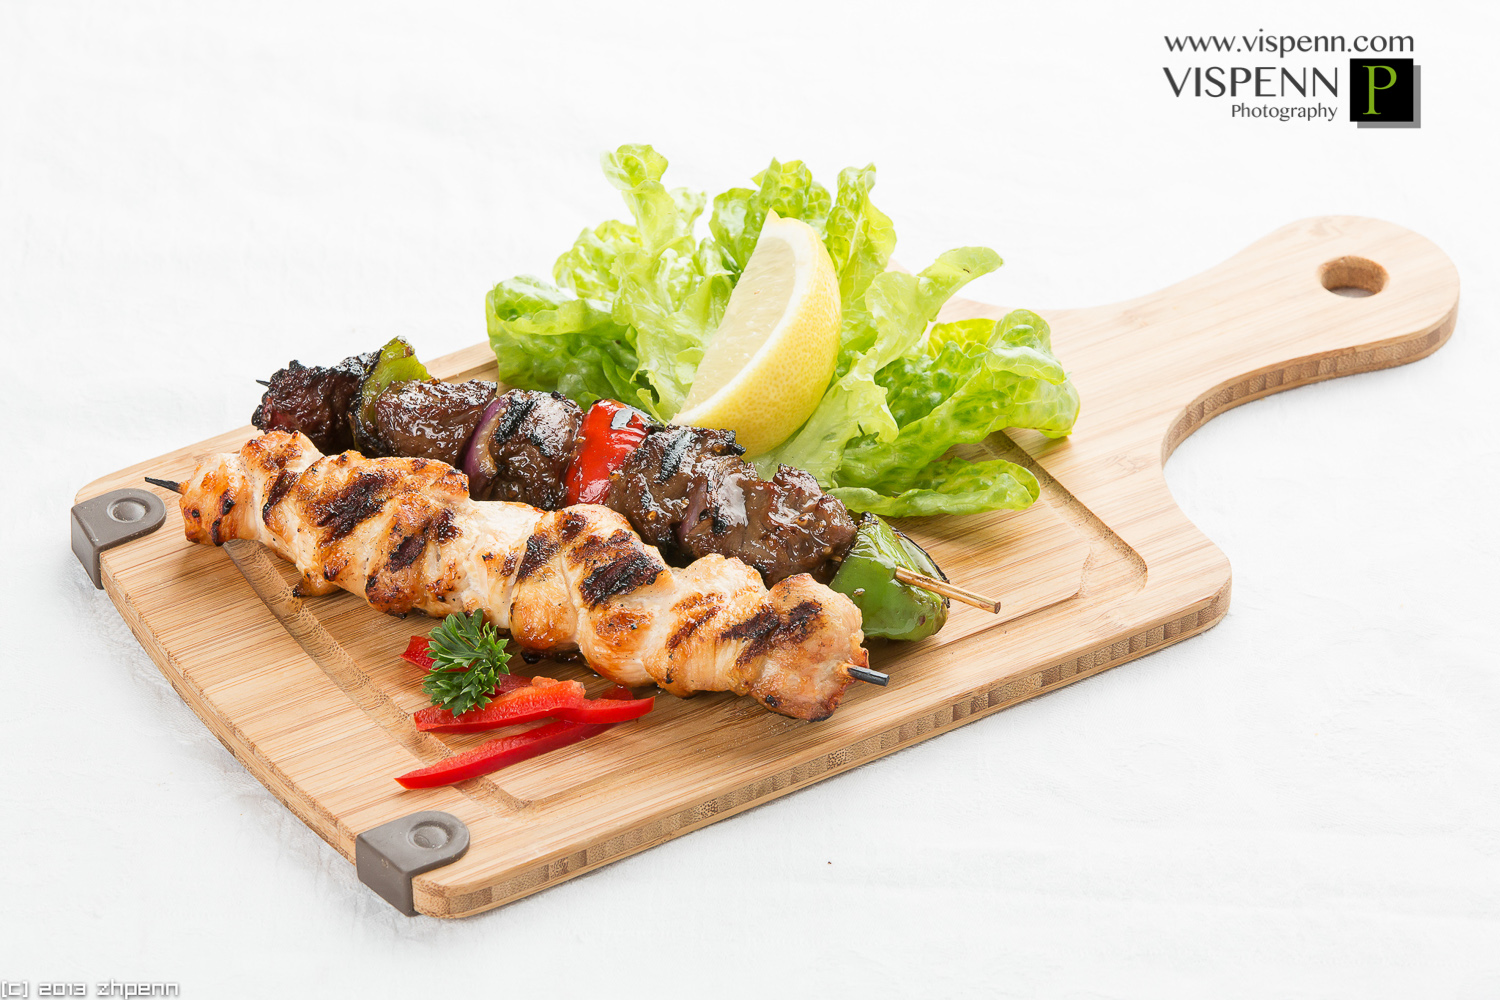 Foods and Products Photography Melbourne VISPENN 墨尔本 美食摄影 菜单摄影 产品照 8950